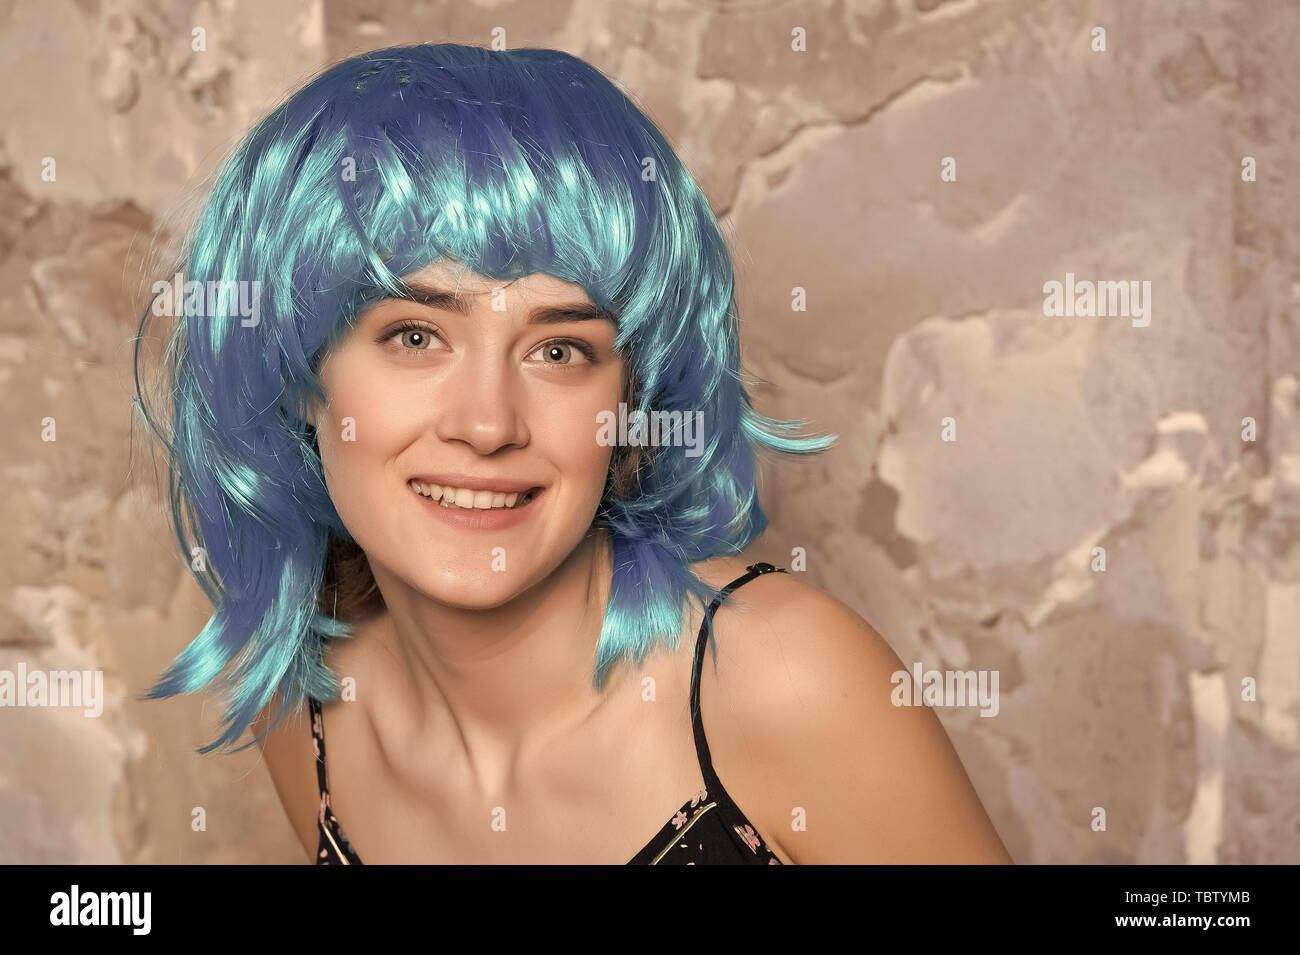 Freak concept. Lady on smiling face posing in blue wig, concrete wall background. Woman with blue hair looks unordinary and extraordinary. Lady freak with unordinary appearance. - Stock Image